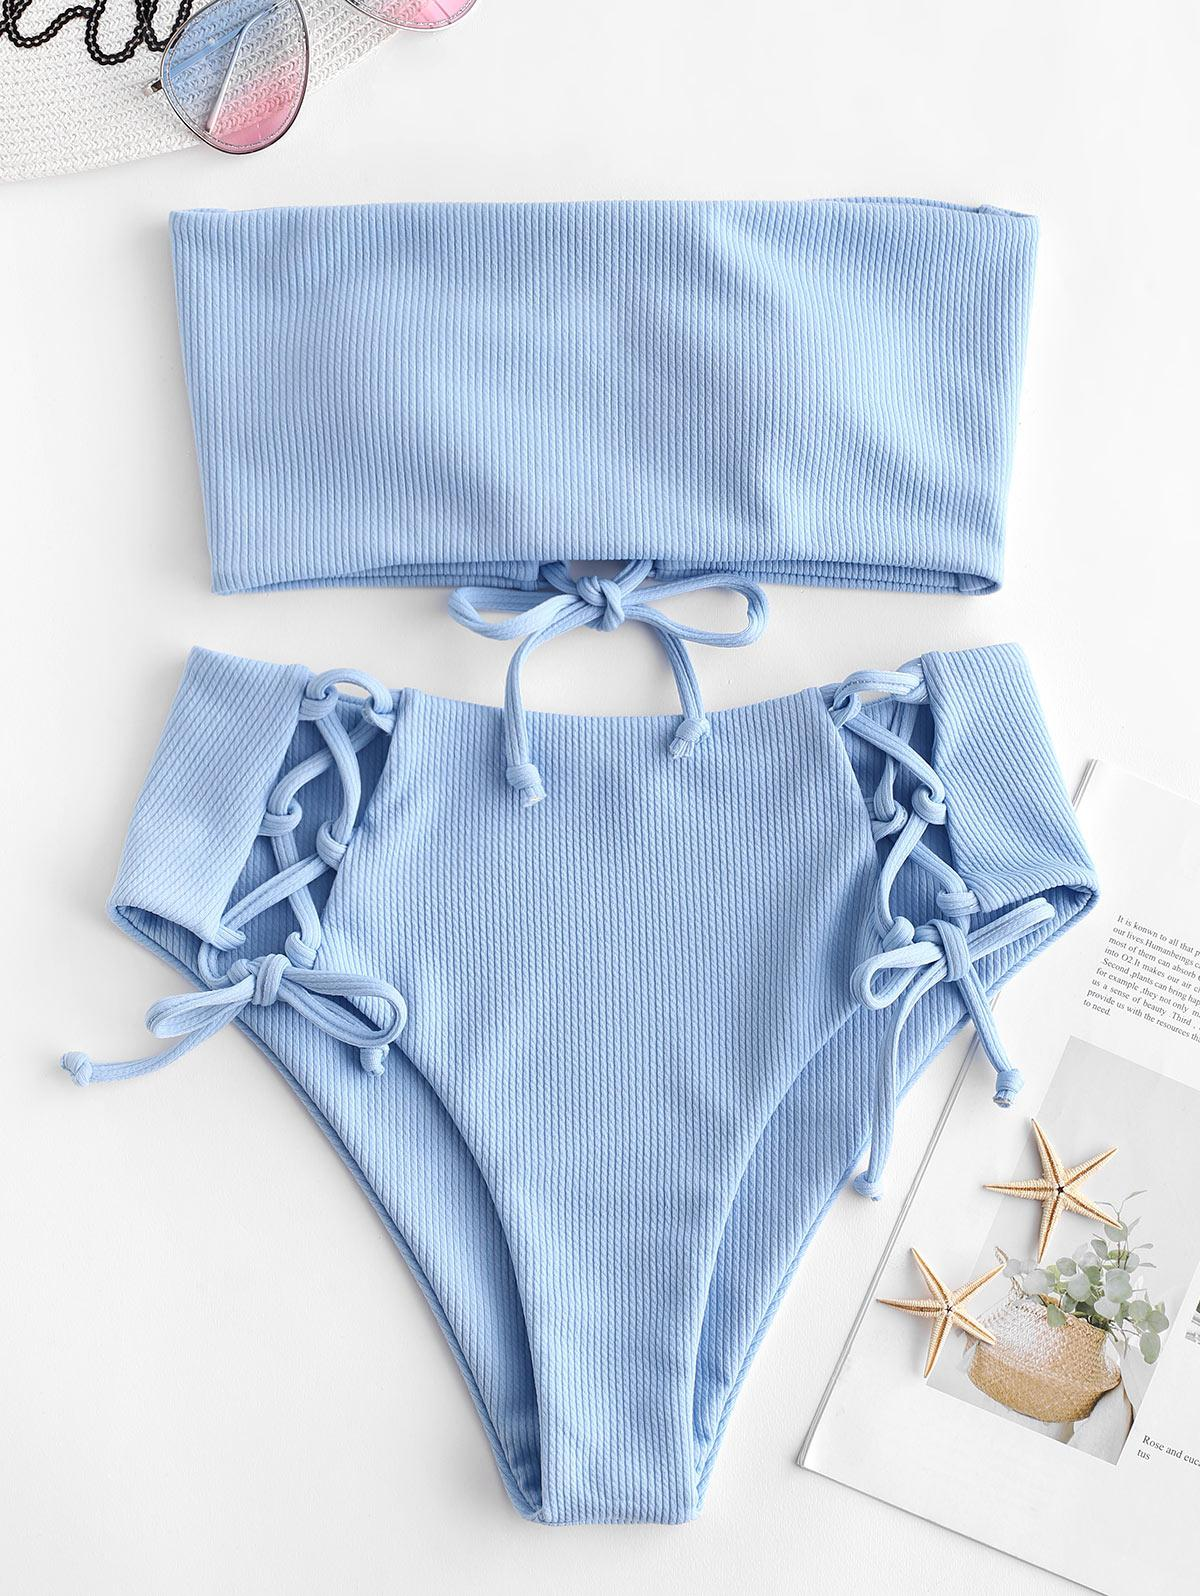 ZAFUL Lace Up Ribbed Strapless Bikini Set фото